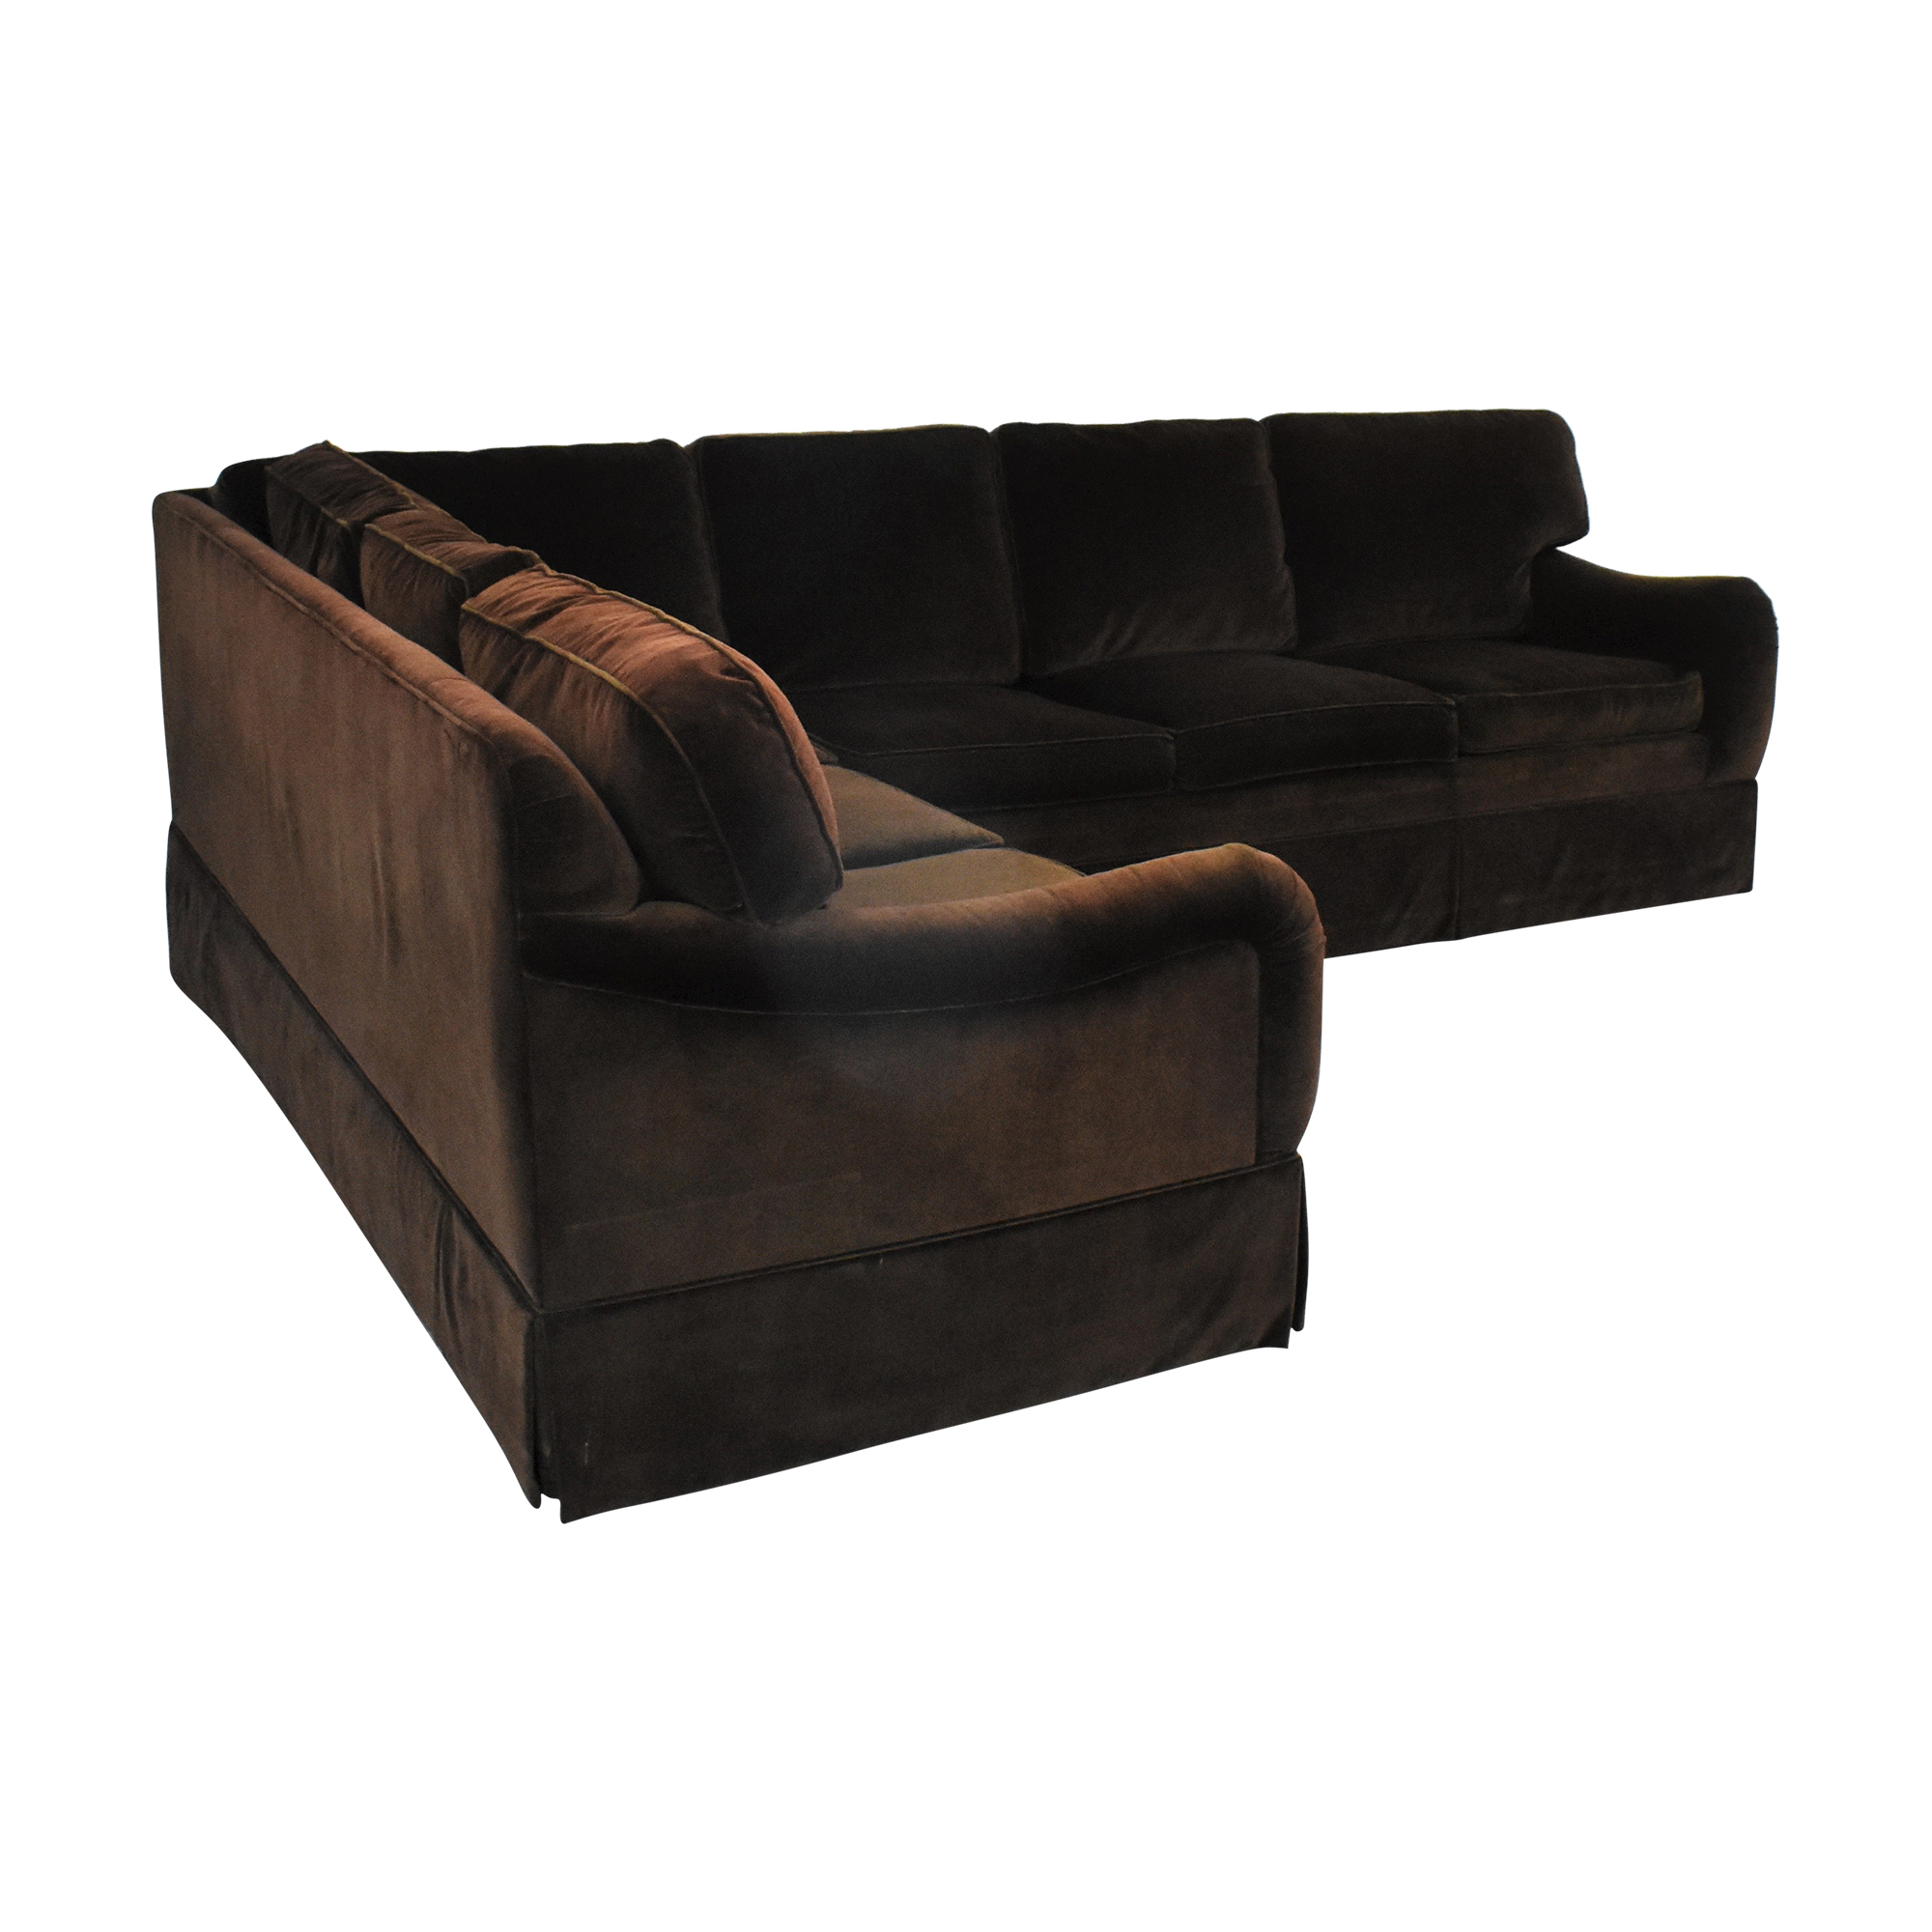 Ethan Allen L Shaped Sectional Sofa / Sofas